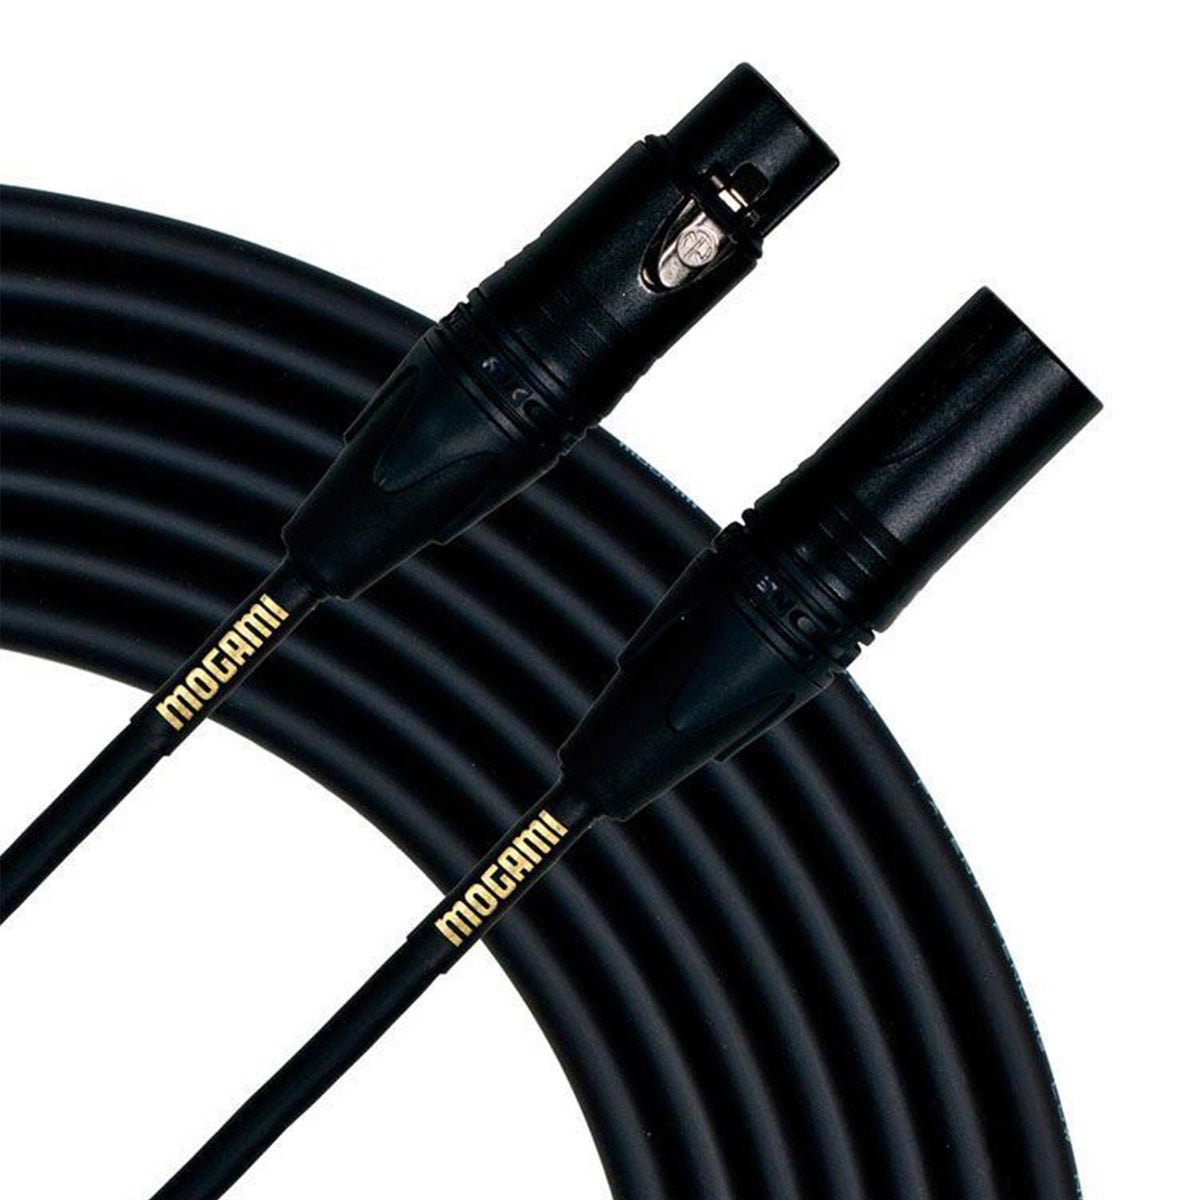 Mogami Gold Studio 6-foot XLR Microphone Cable